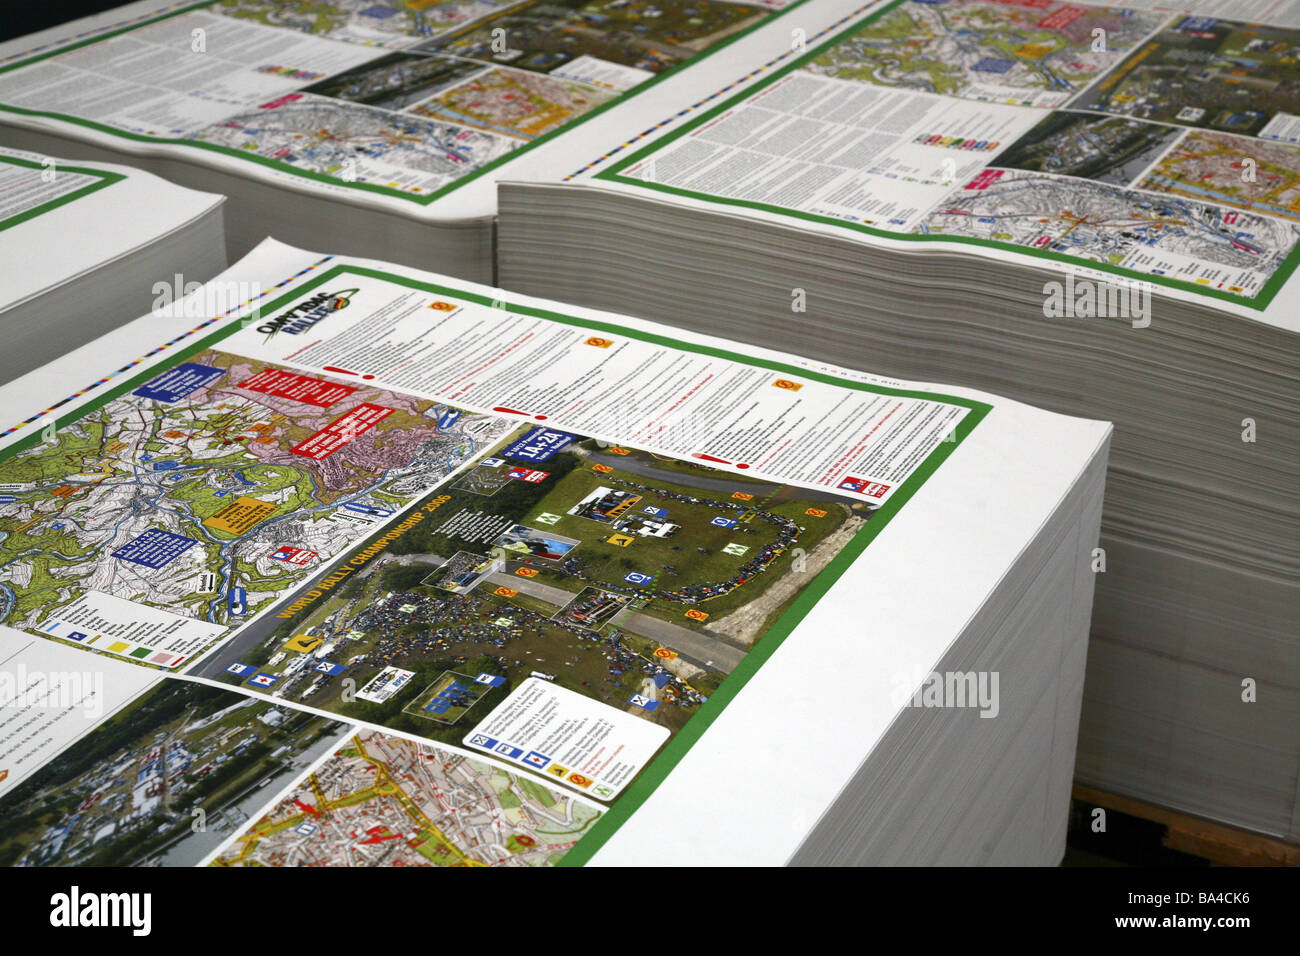 Printing work paper-stack economy prints industry offset printing work-product stack paper inter-storage indoors - Stock Image